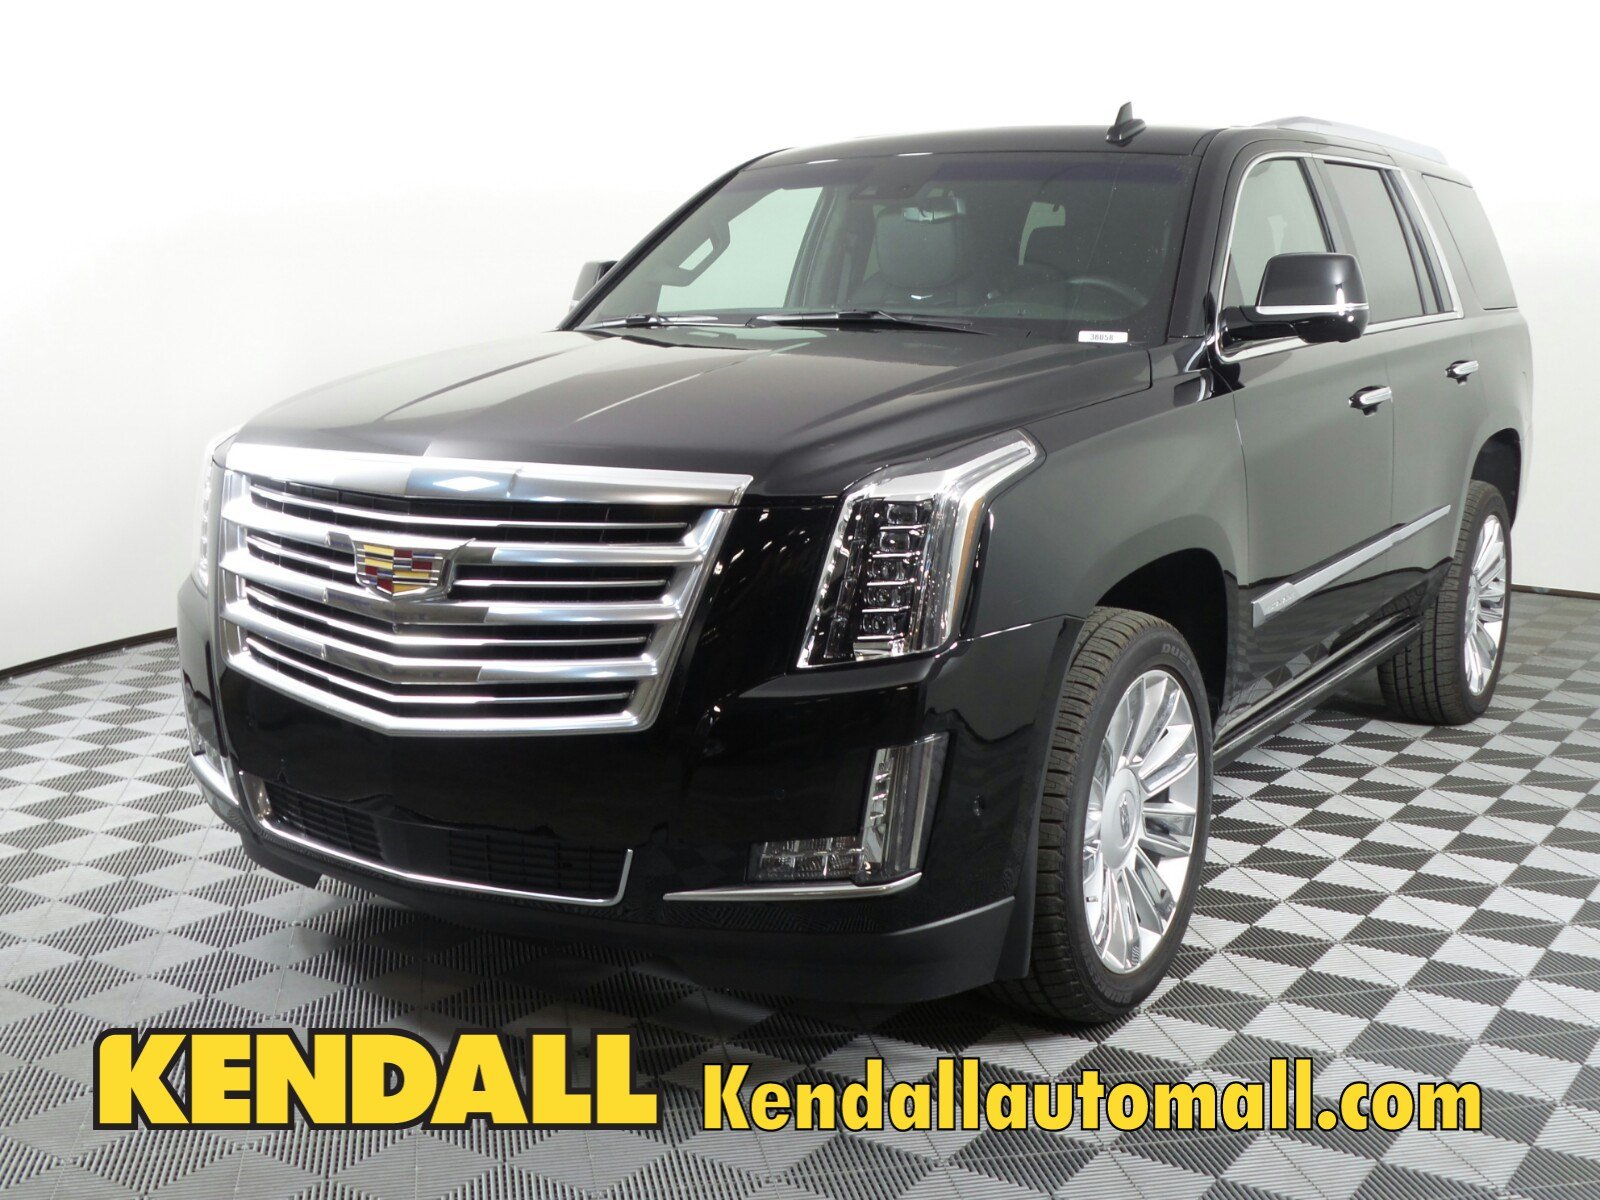 new 2018 cadillac escalade platinum 4wd in nampa 38058 kendall at the idaho center auto mall. Black Bedroom Furniture Sets. Home Design Ideas